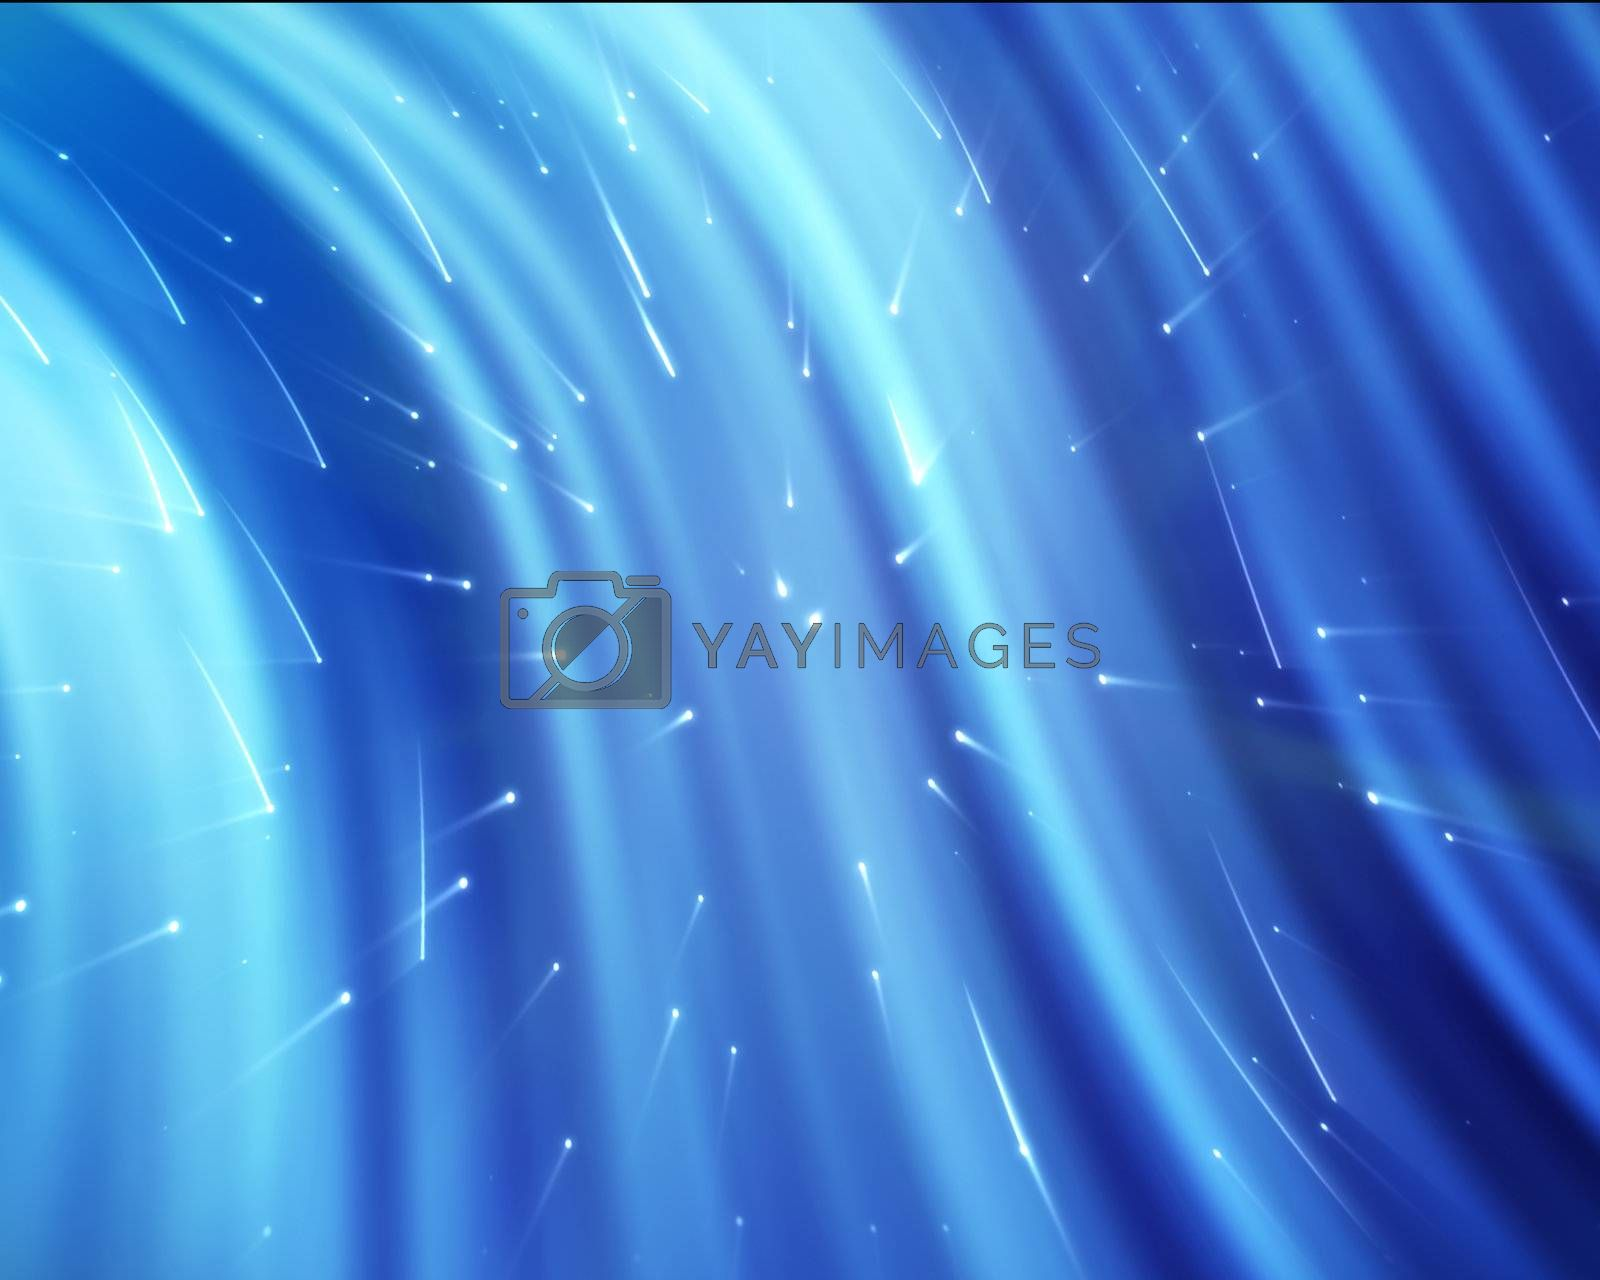 Blue streams of light with shining stars against a colourful background